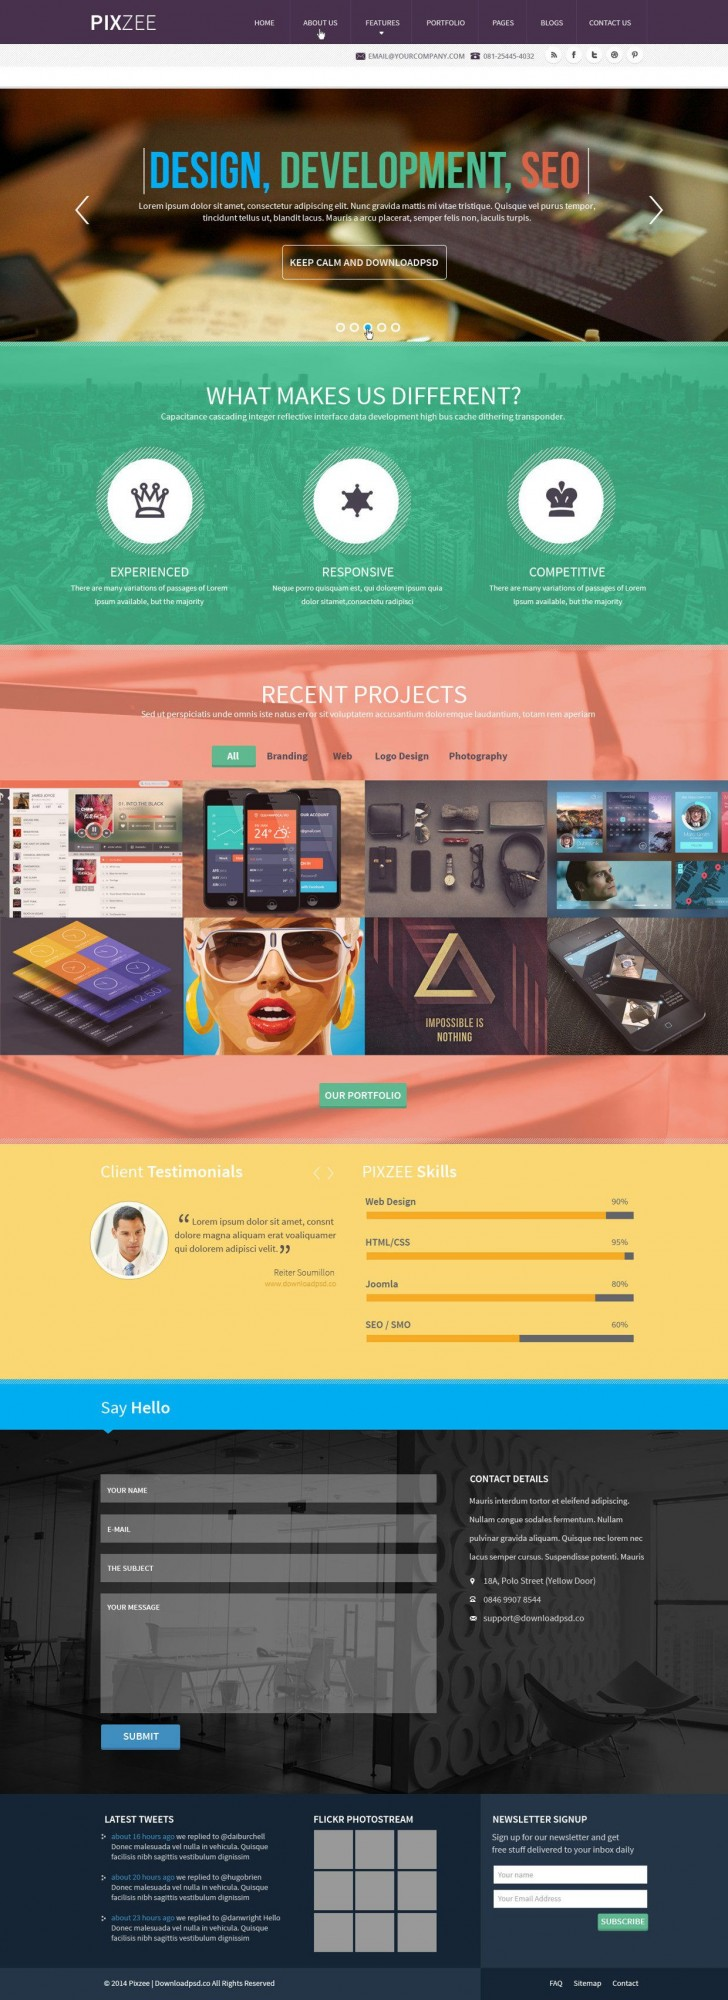 009 Magnificent One Page Website Template Psd Free Download Highest Clarity 728